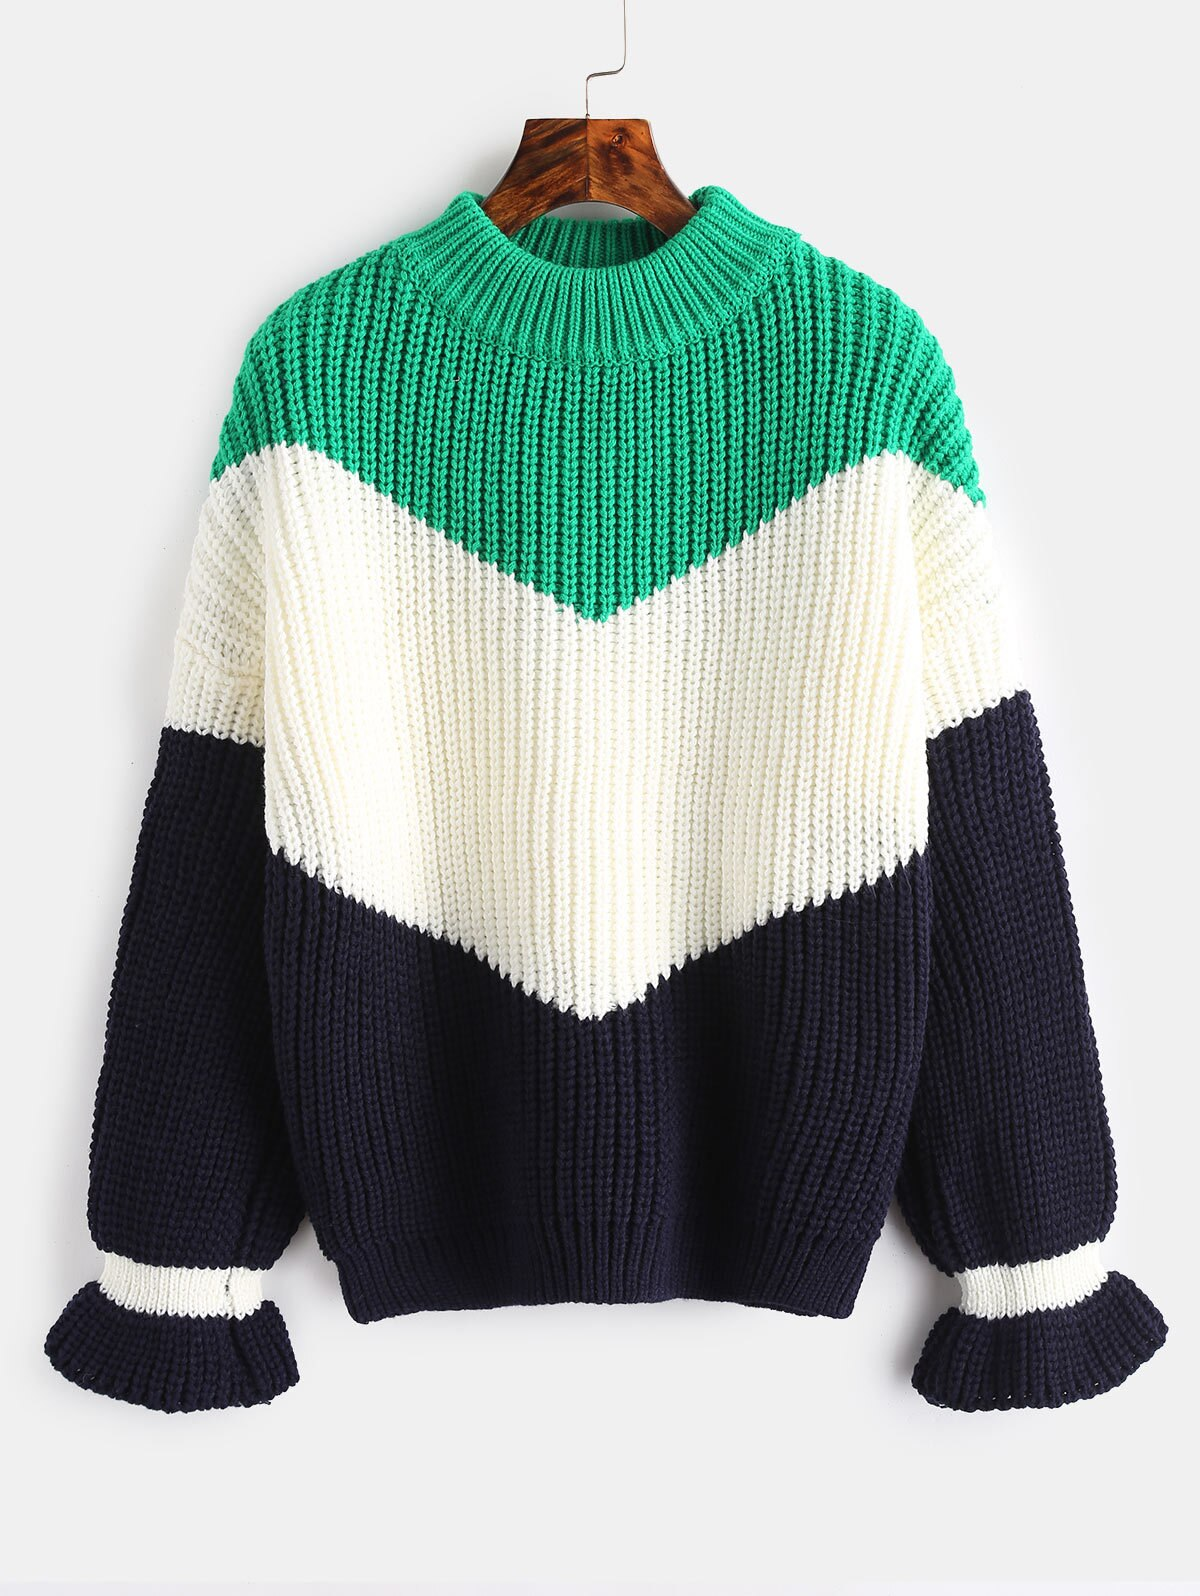 Hot Sale! Winter Womens Sweater O-Neck Striped Computer Knitted Casual Long Sleeve Rainbow Oversized Sweater Knit Sweater Women